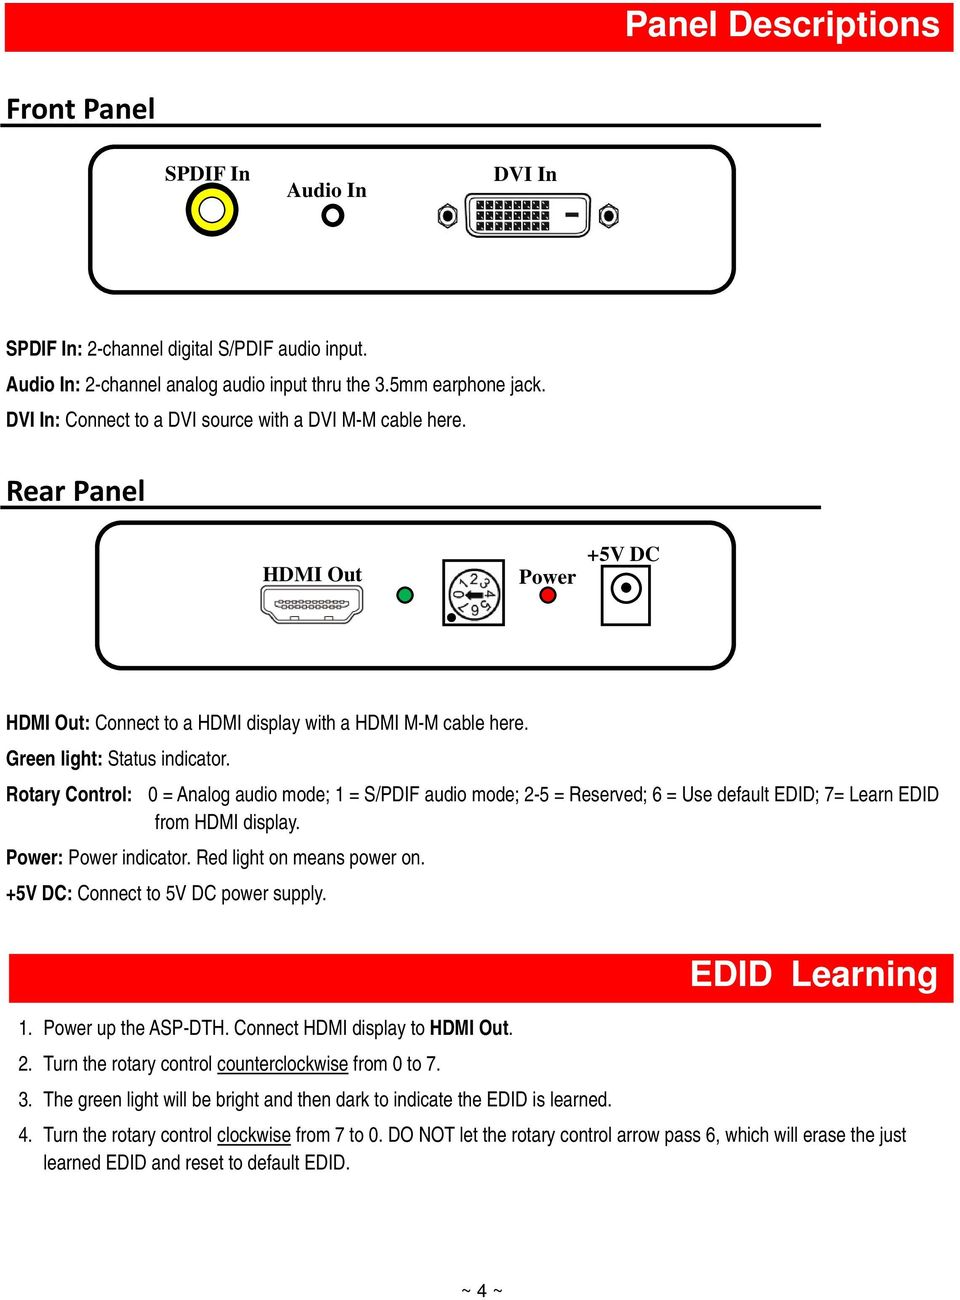 Rotary Control: 0 = Analog audio mode; 1 = S/PDIF audio mode; 2-5 = Reserved; 6 = Use default EDID; 7= Learn EDID from HDMI display. Power: Power indicator. Red light on means power on.